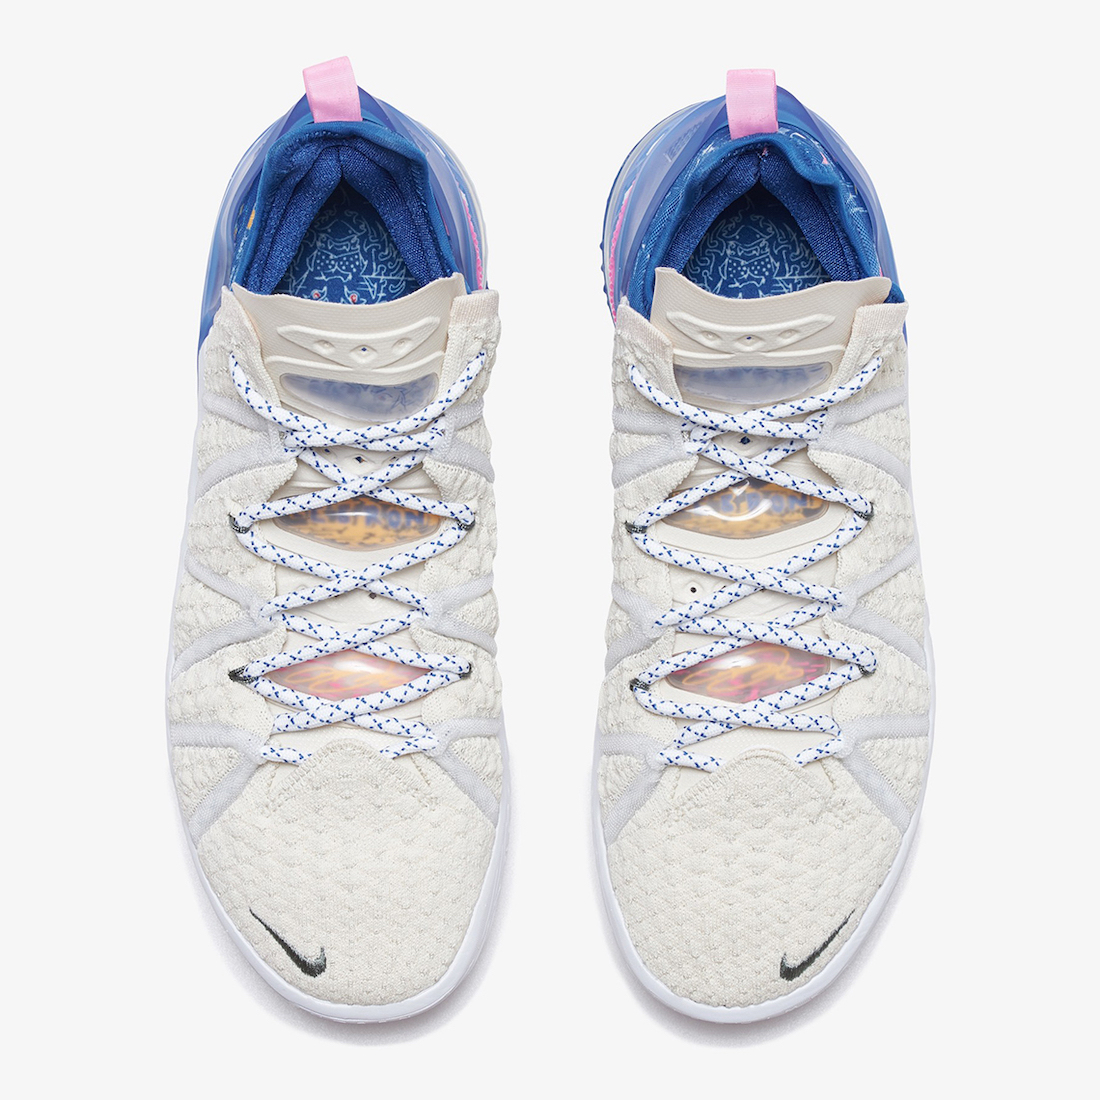 Nike-LeBron-18-Los-Angeles-By-Day-DB8148-200-Release-Date-3